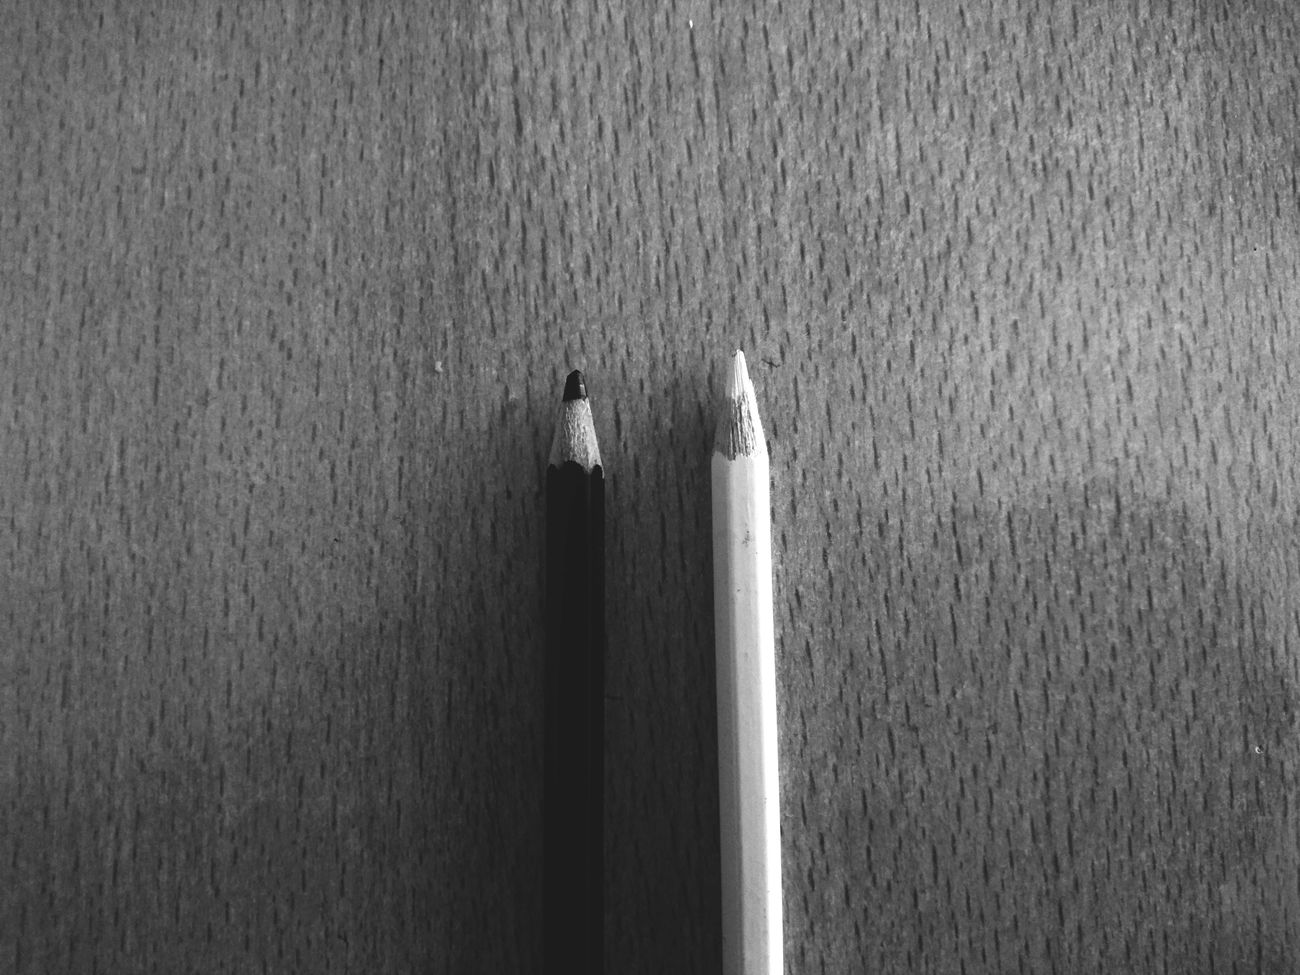 Z5 Premium Xperiaphotography First Eyeem Photo Dark No People Pencil Pen Pencil Drawing